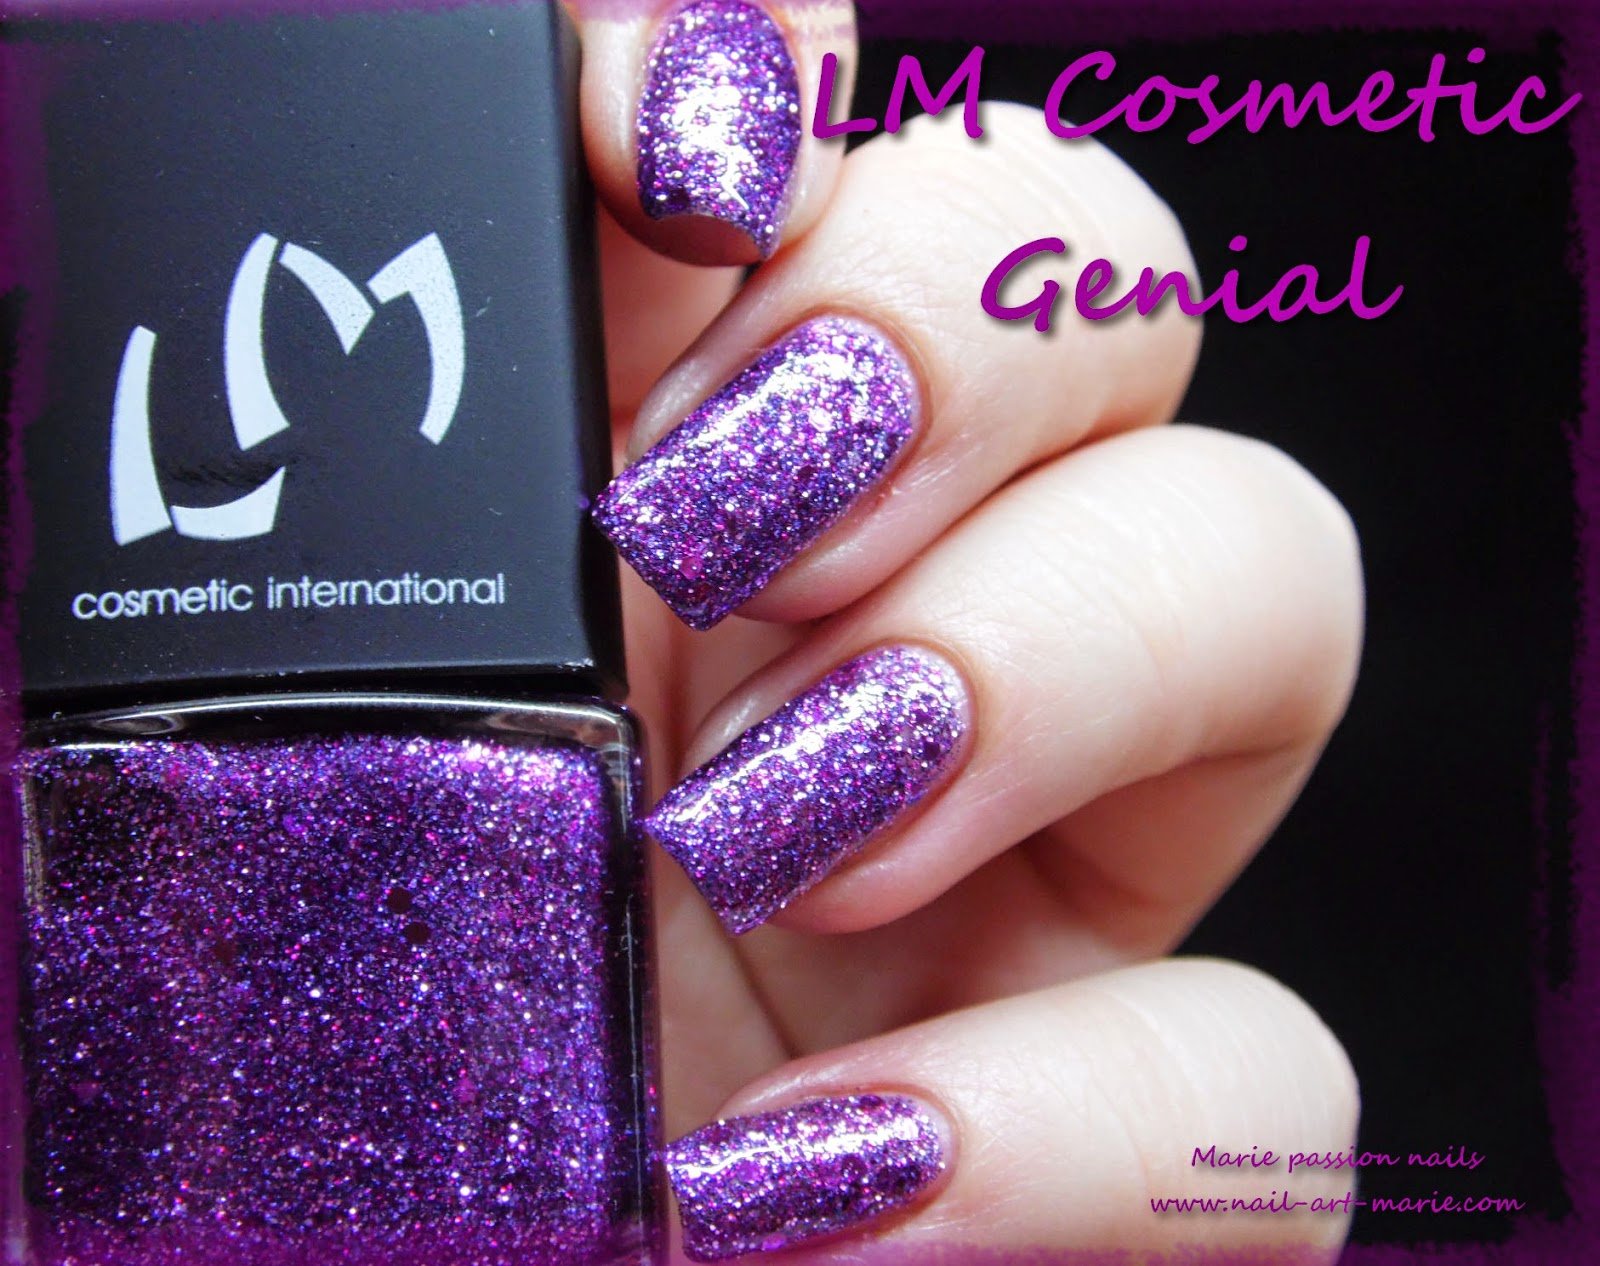 LM Cosmetic Genial1